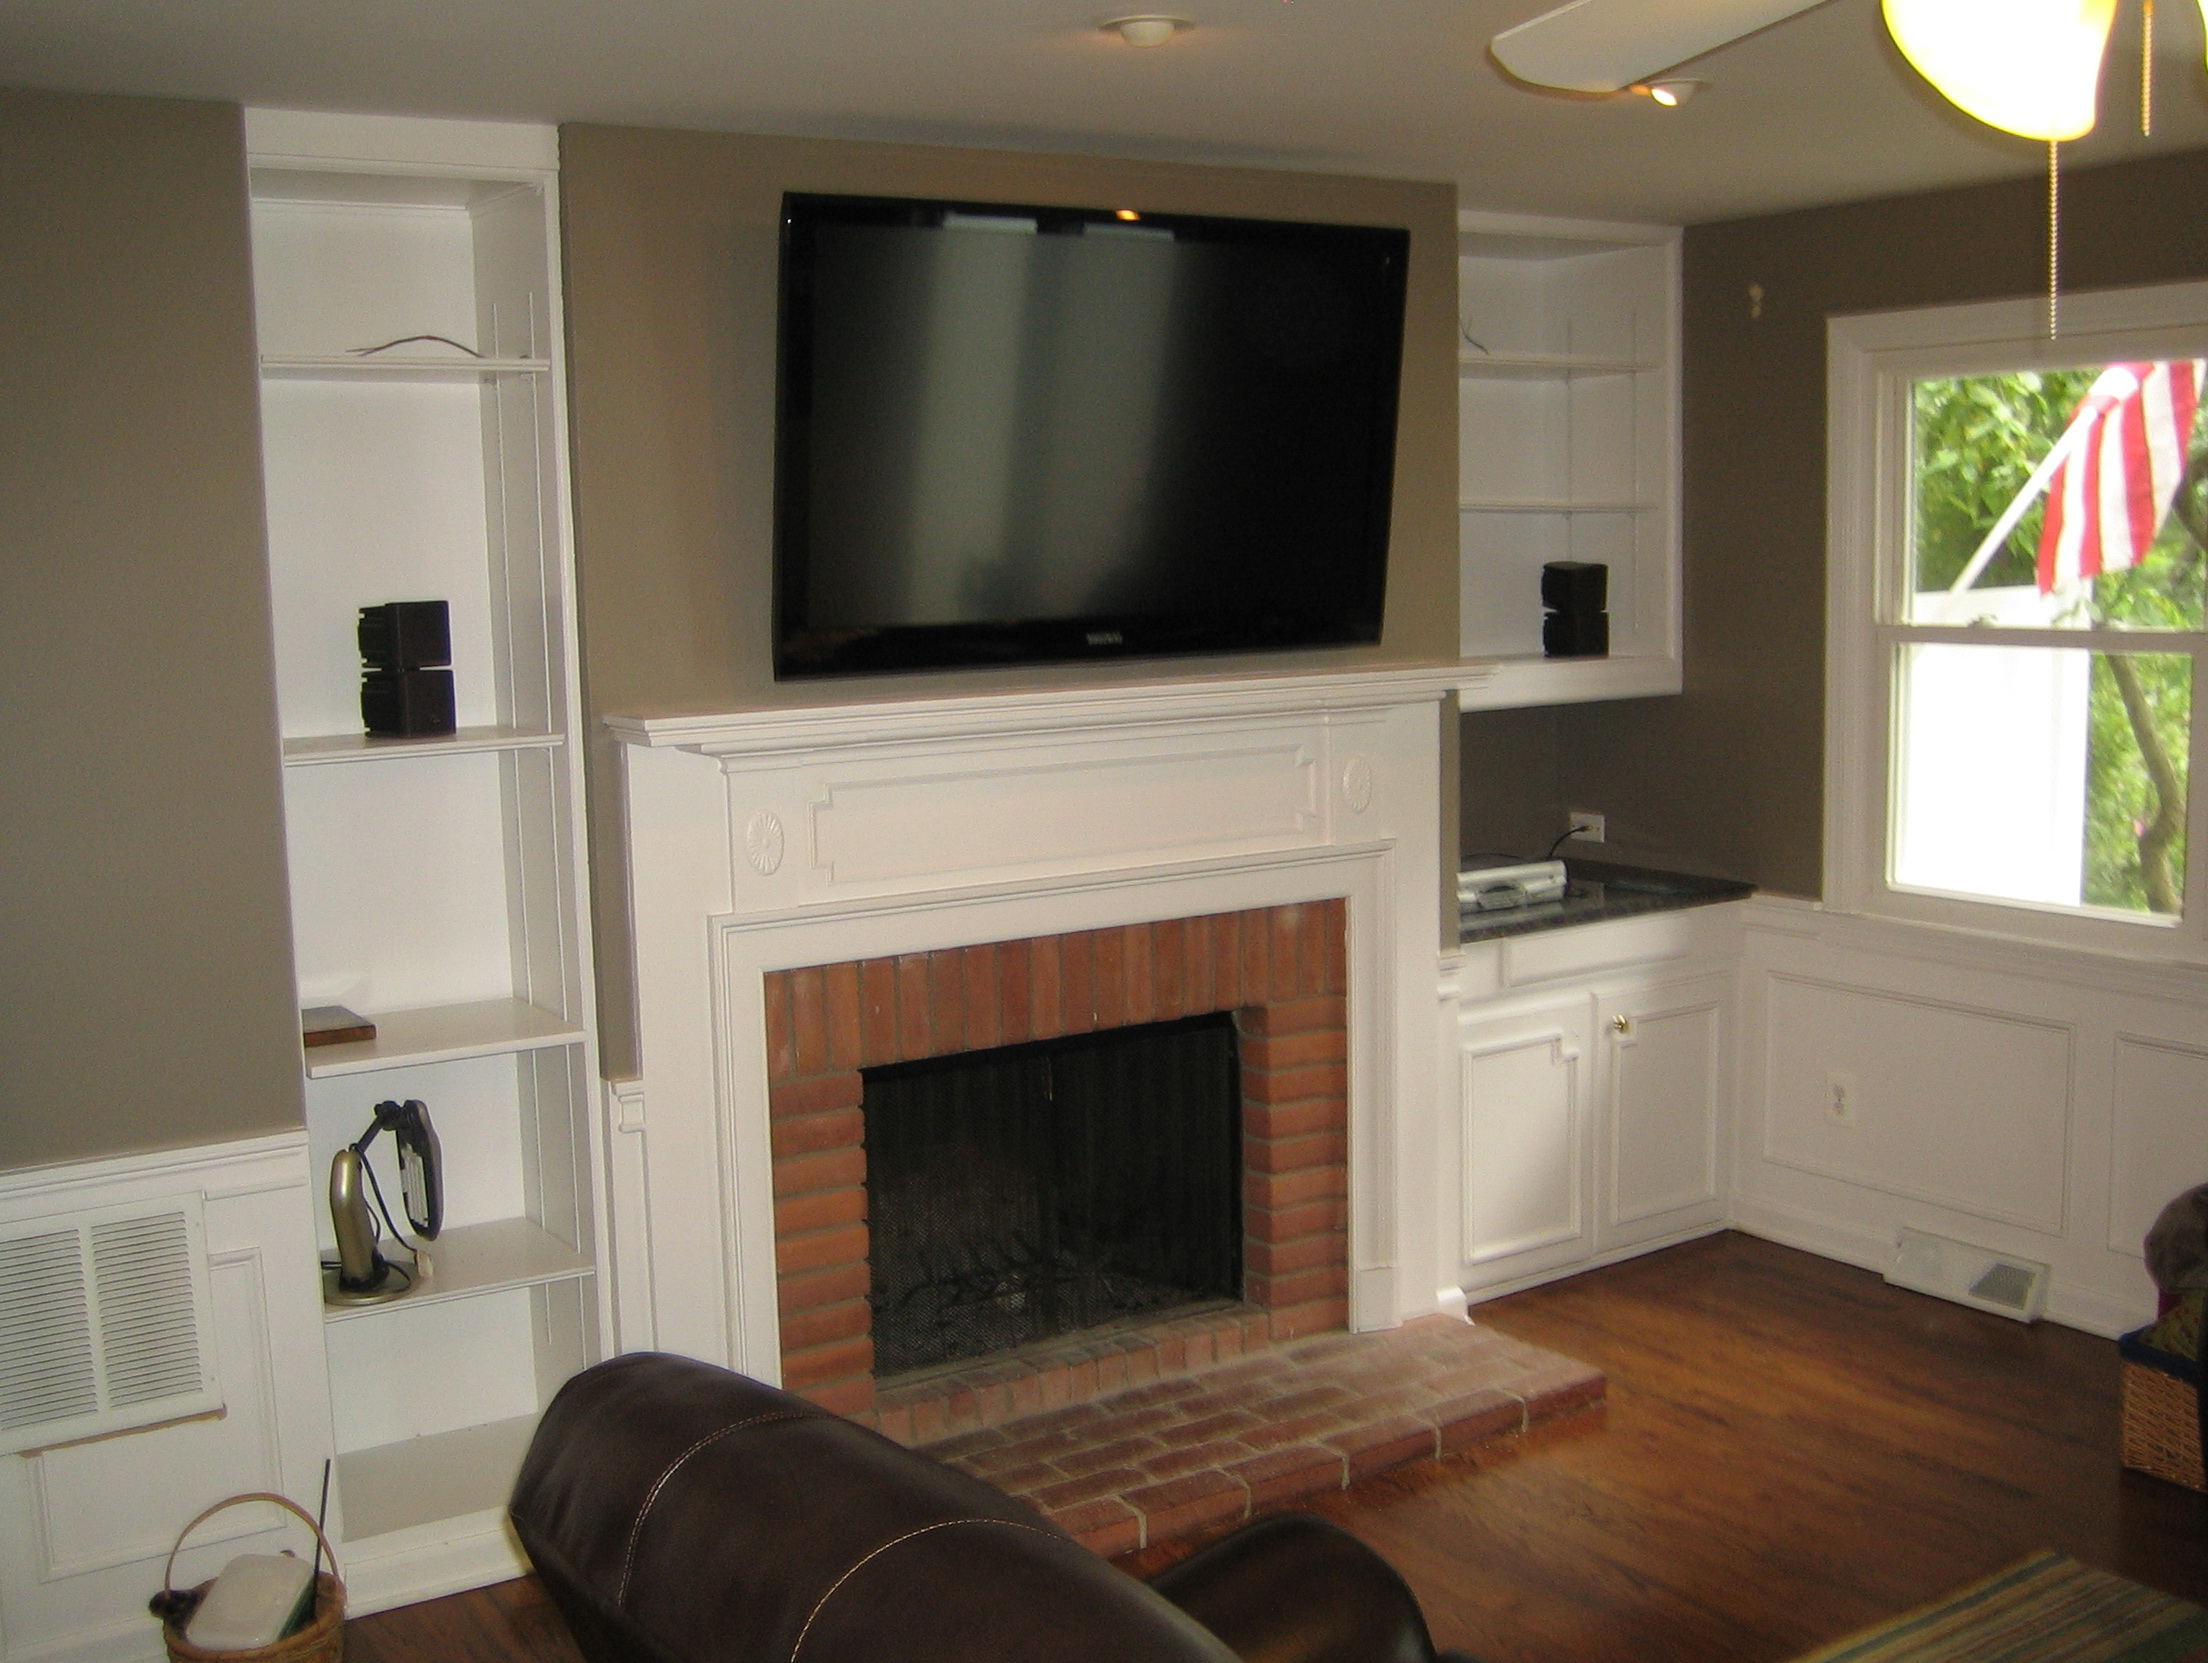 Tv Wall Mount With Shelf Over Fireplace